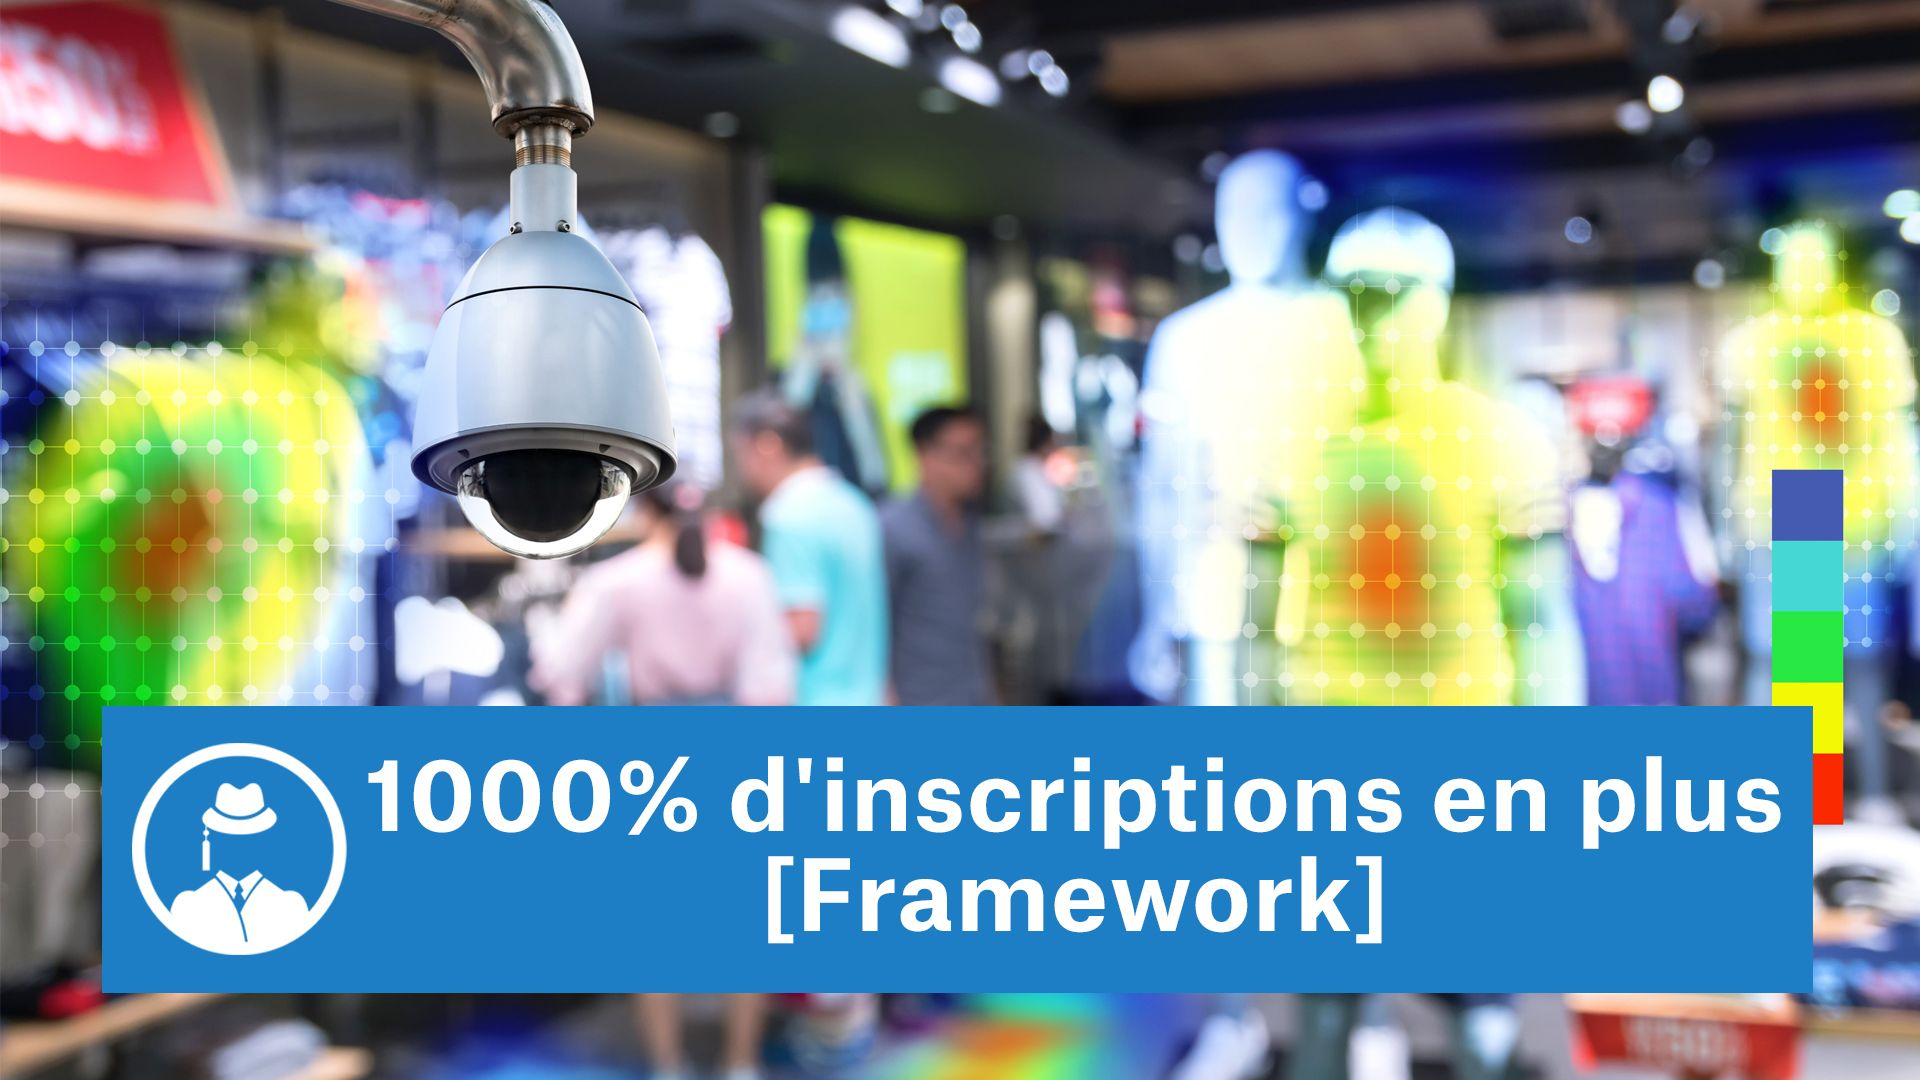 1000% d'inscriptions en plus [Framework] #GrowthHacking #WebMarketing #FormationGrowthHacking #CentreDeFormationFrance #TunnelAARRR #AARRR #SocialMedia #CommunityManagement #SEO #MarketingDigital #SiteWeb #HeatMap #Hotjar